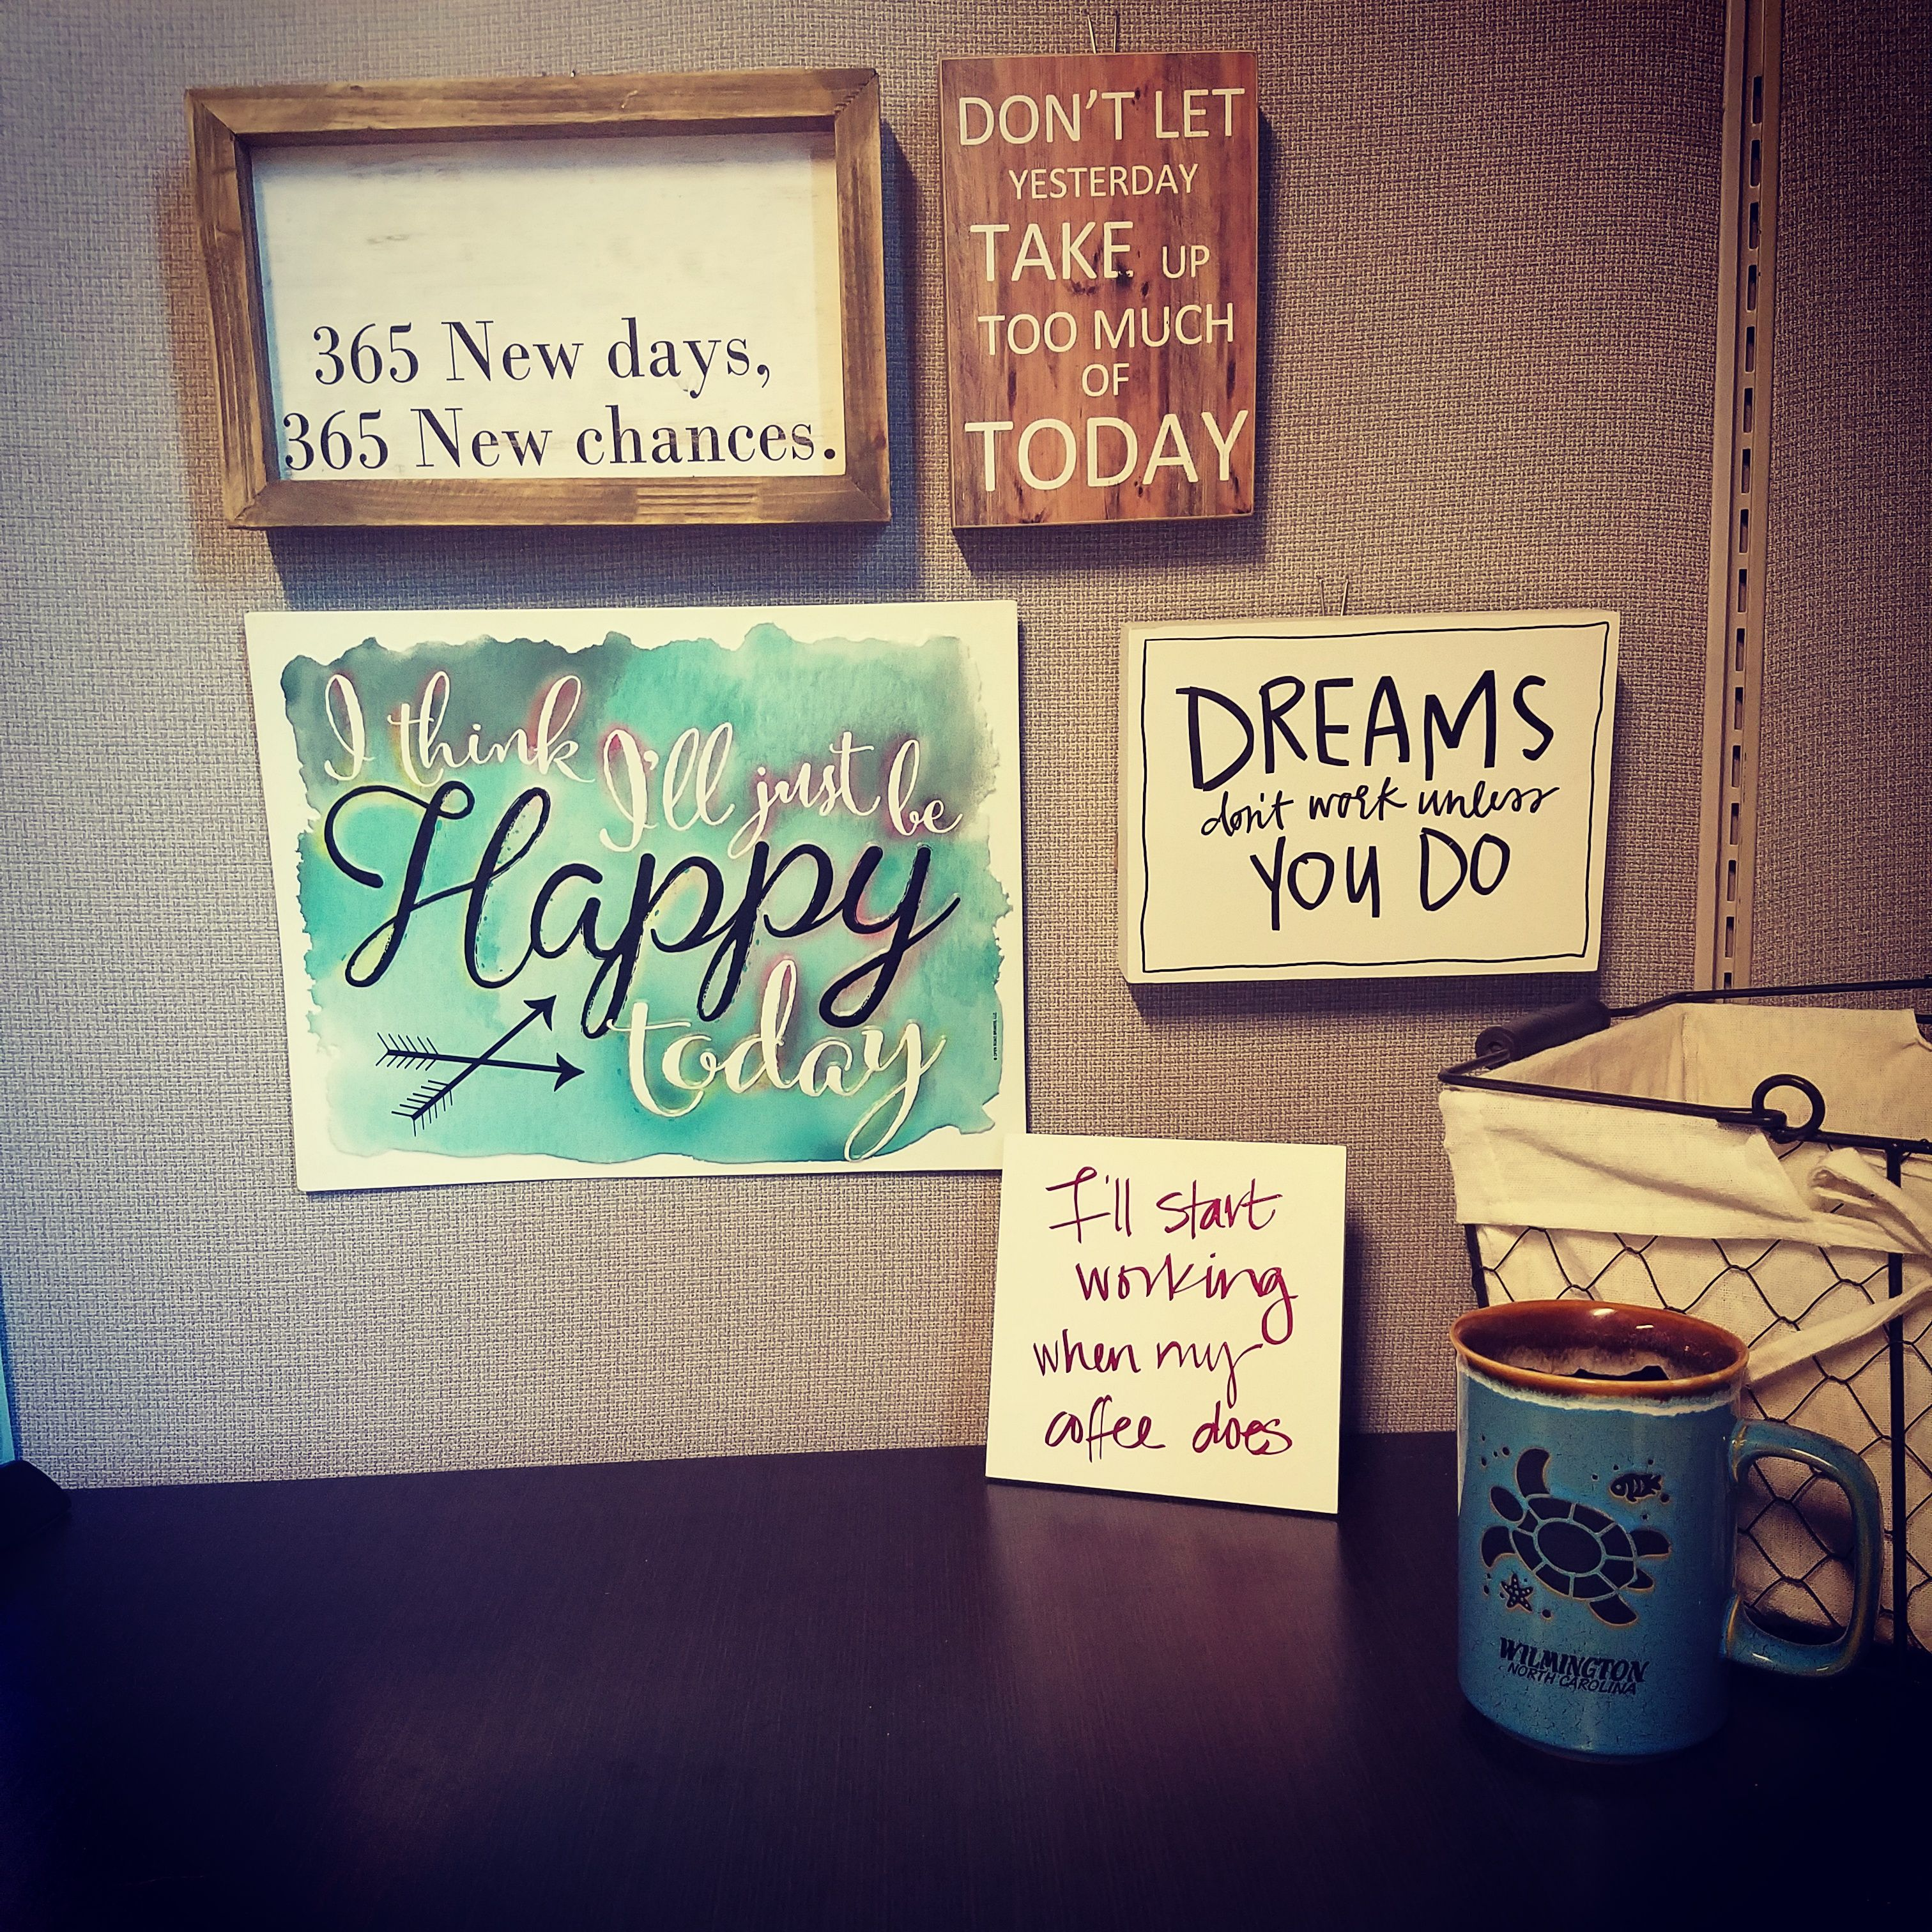 Inspirational cubicle decor with cute quotes